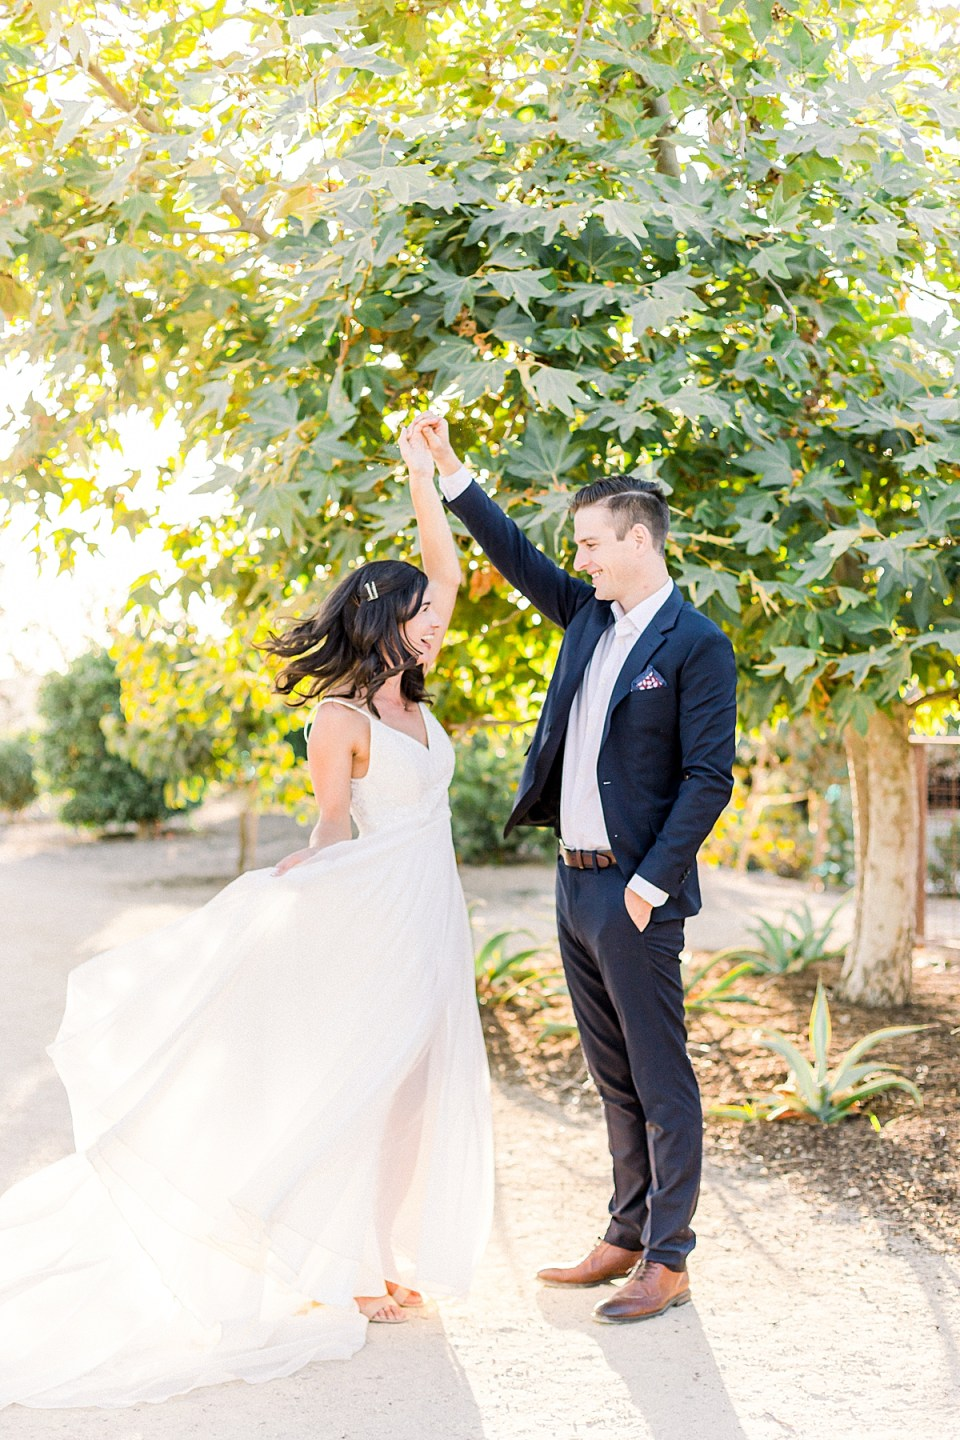 Scott twirling his wife as she smiles and laughs back at him during their San Luis Obispo Farm Wedding